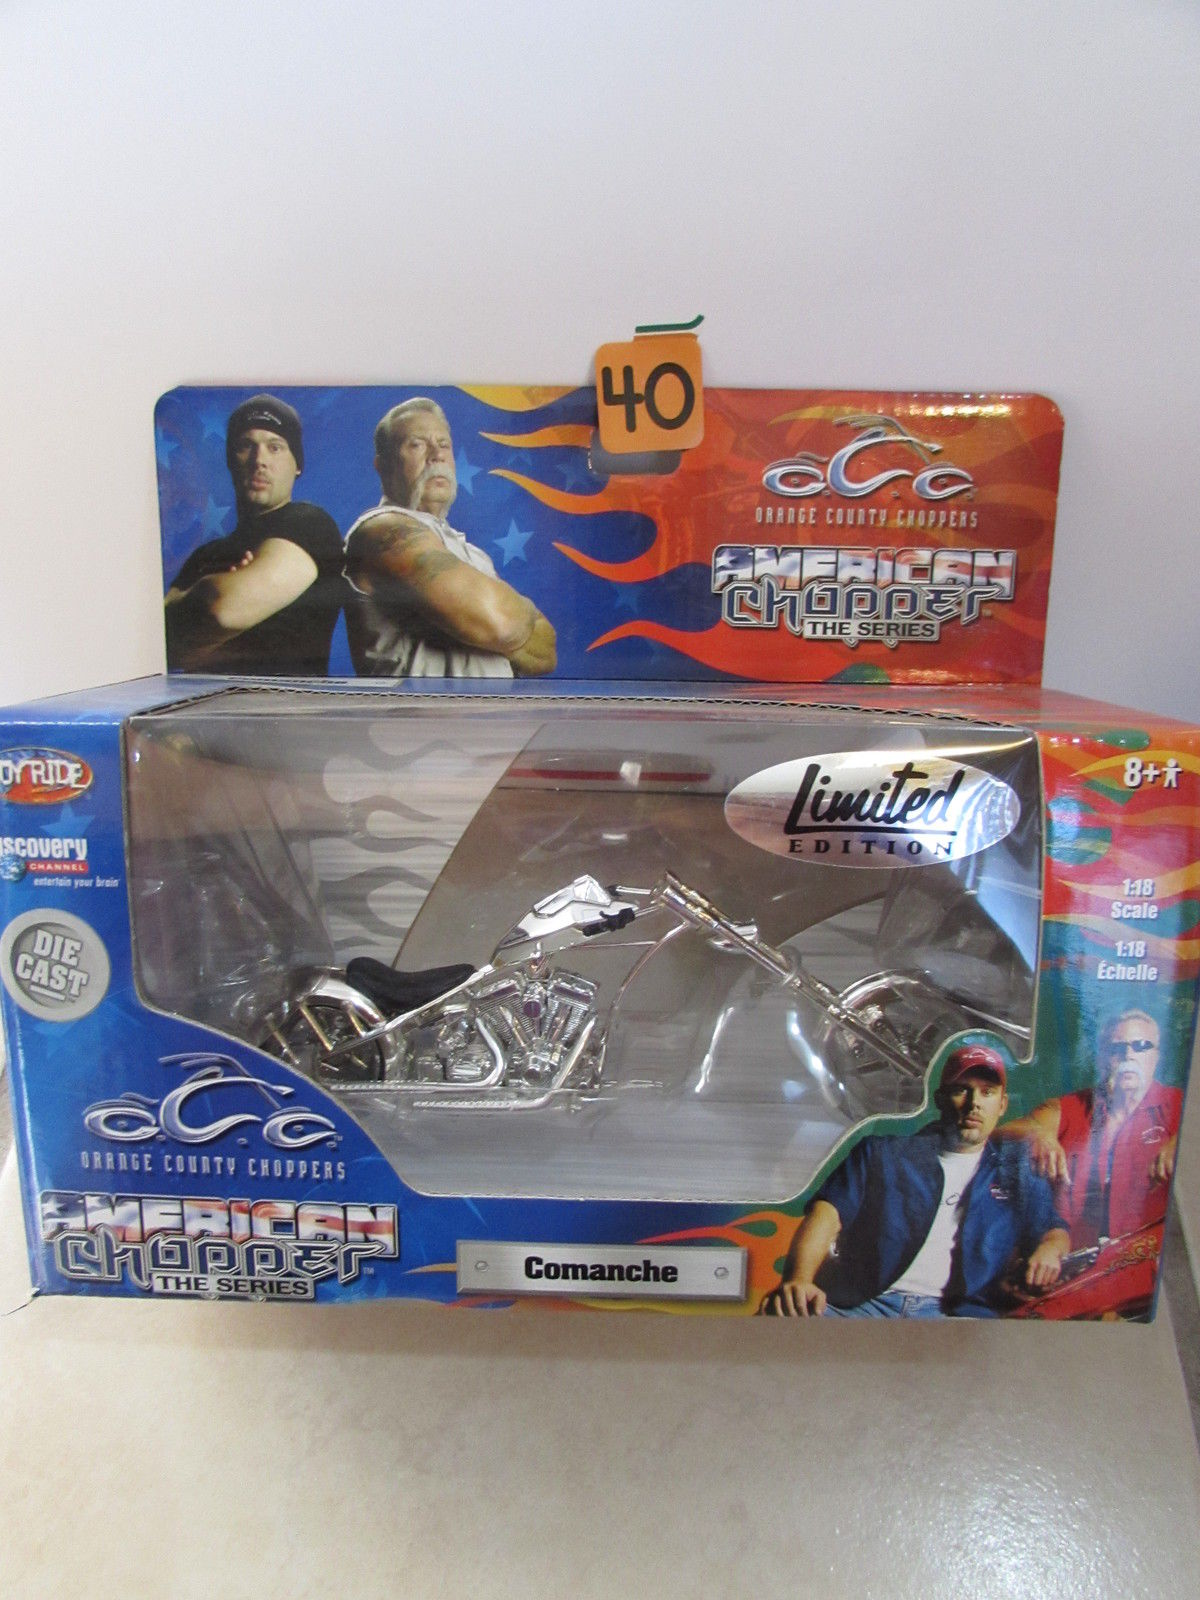 AMERICAN CHOPPER THE SERIES - COMANCHE SCALE 1:18